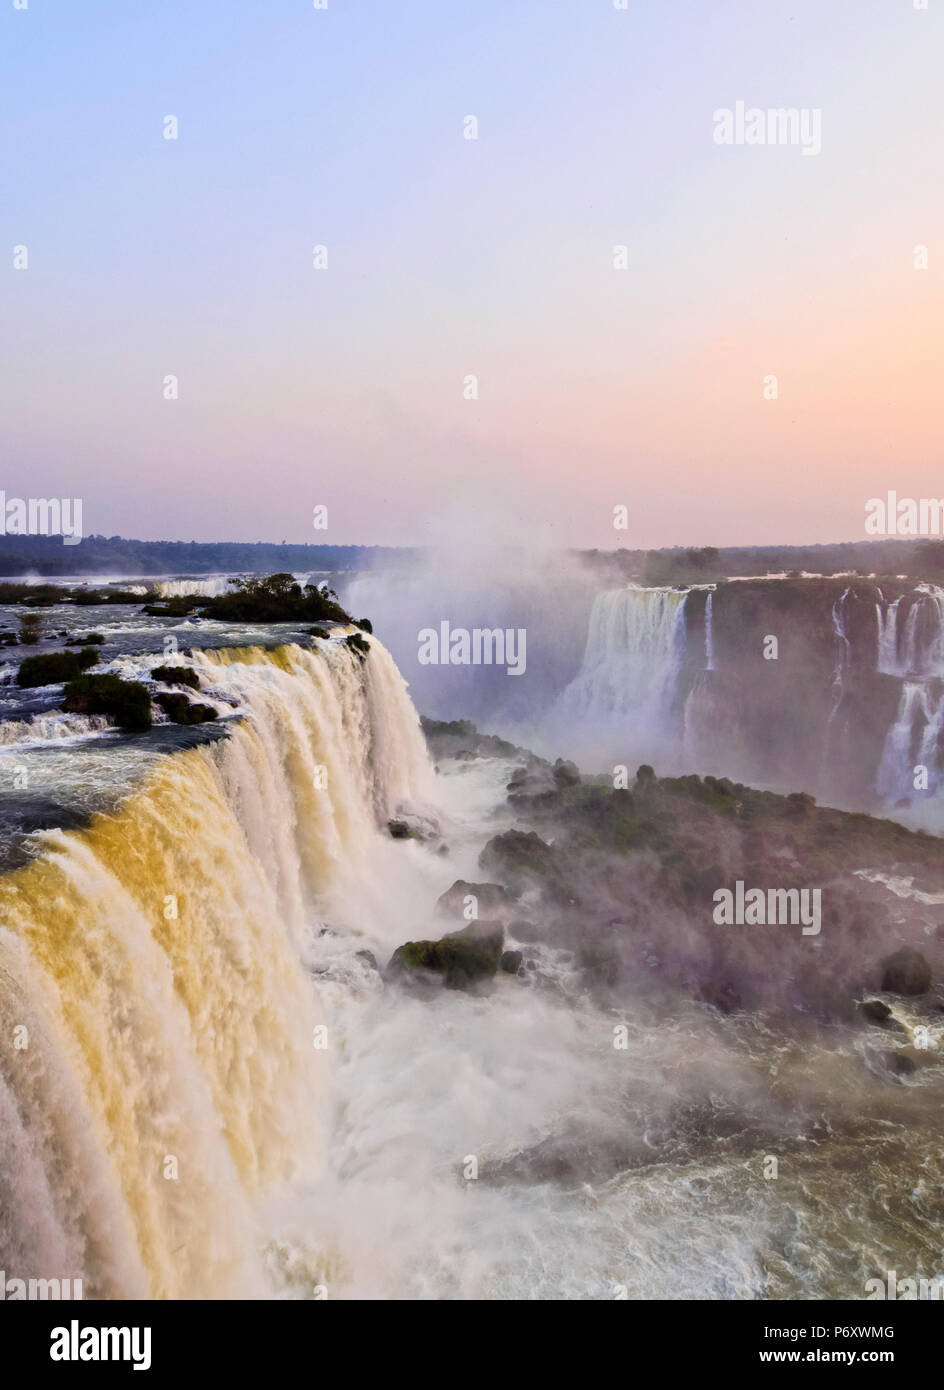 Brazil, State of Parana, Foz do Iguacu, View of Iguazu Falls. - Stock Image